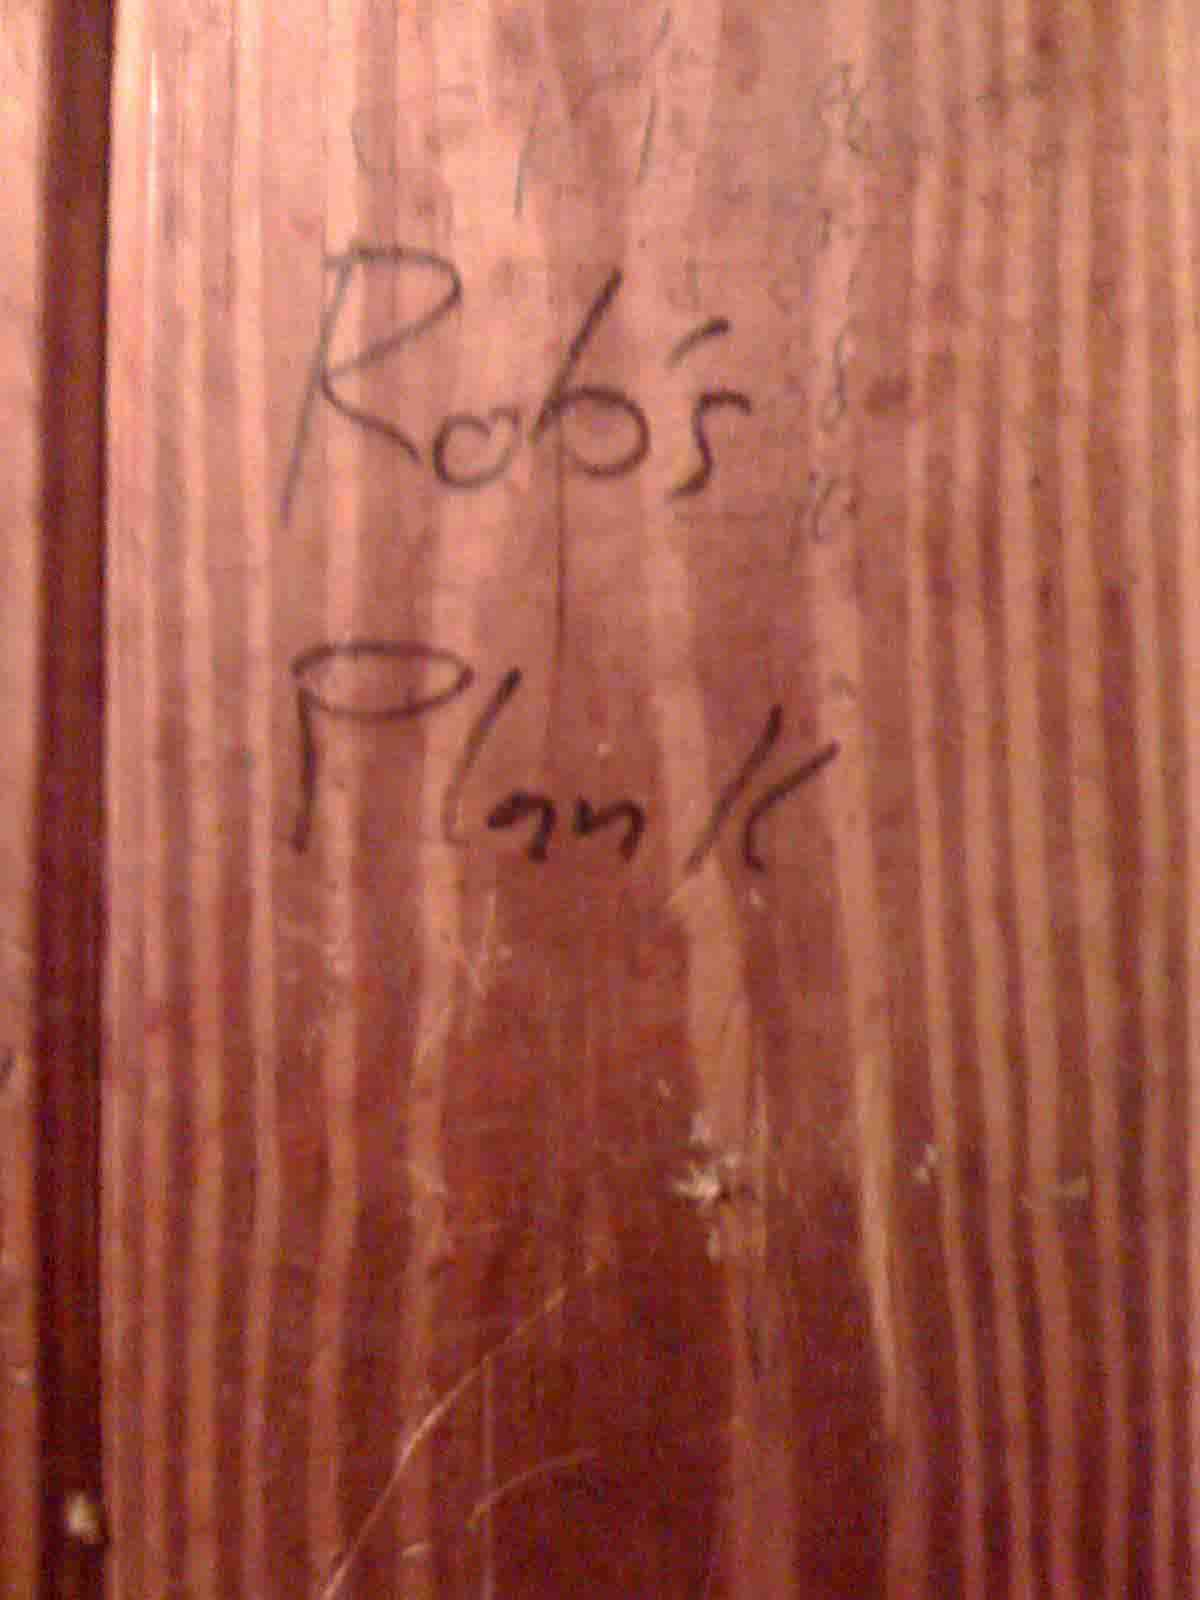 Neptune Beach, FL - Pete's Bar - Rob's Plank